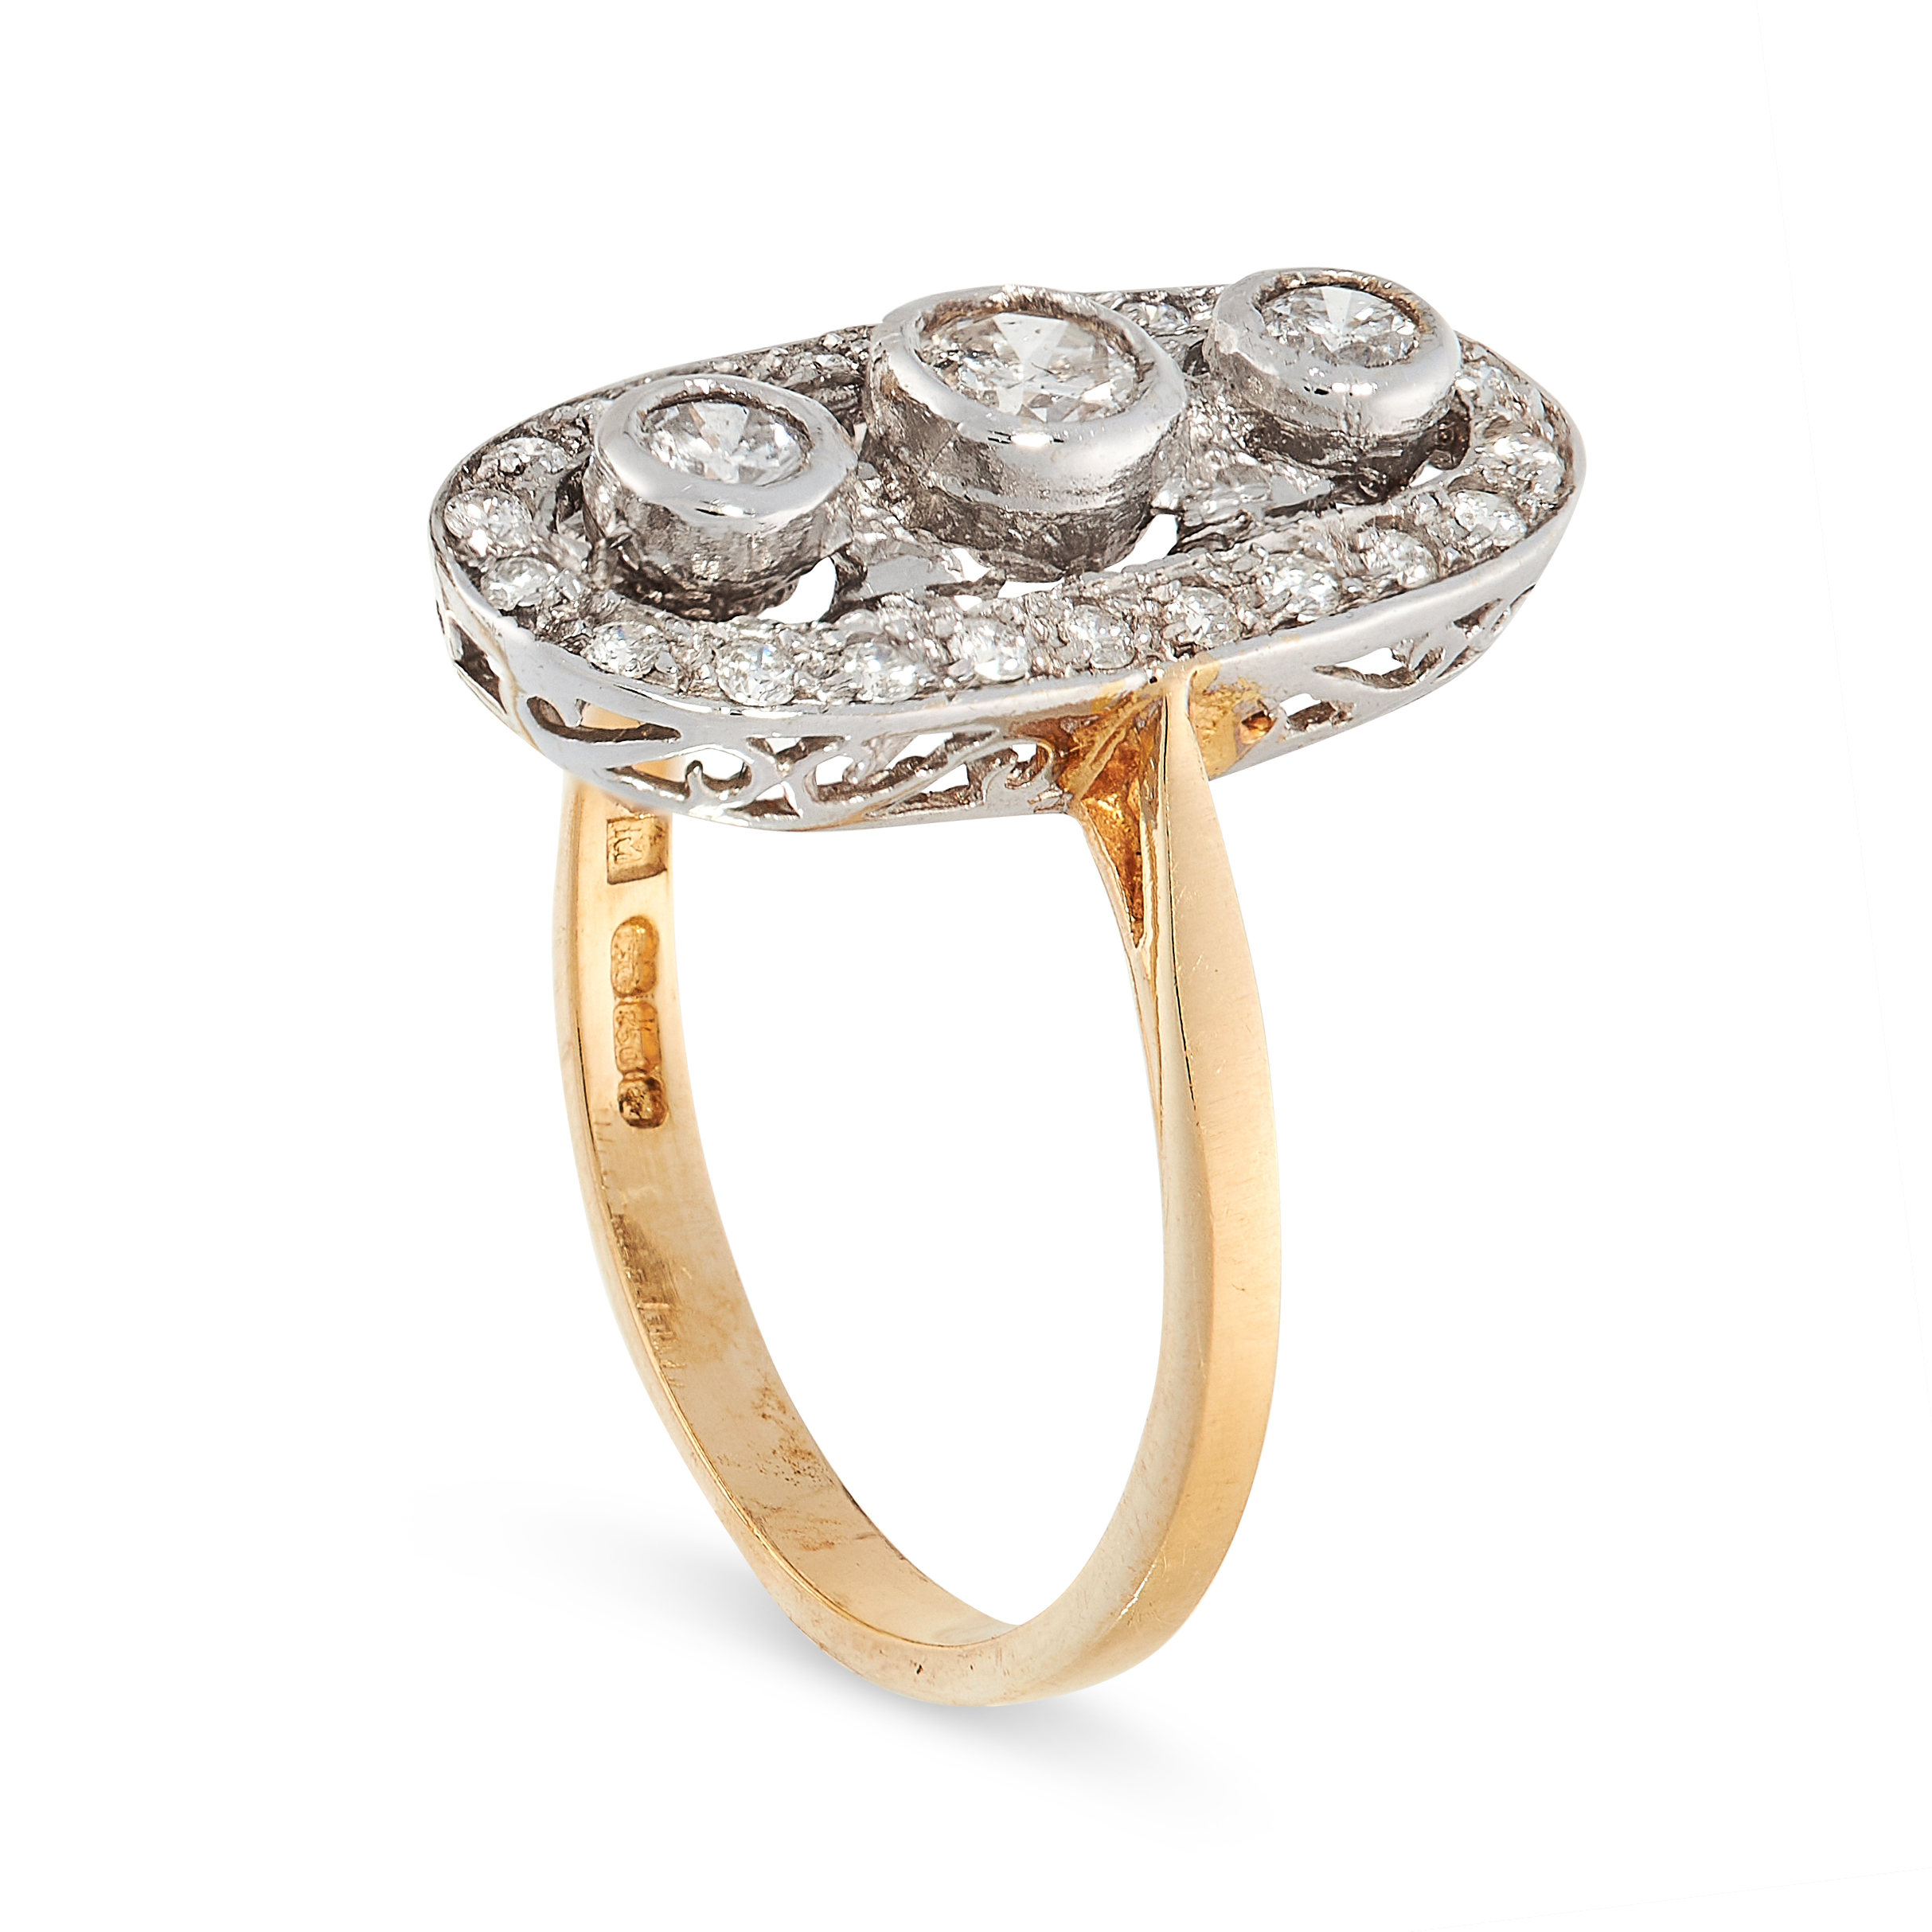 DIAMOND DRESS RING in 18ct yellow gold, set with three principle diamonds totalling 0.24 carats in - Image 2 of 2